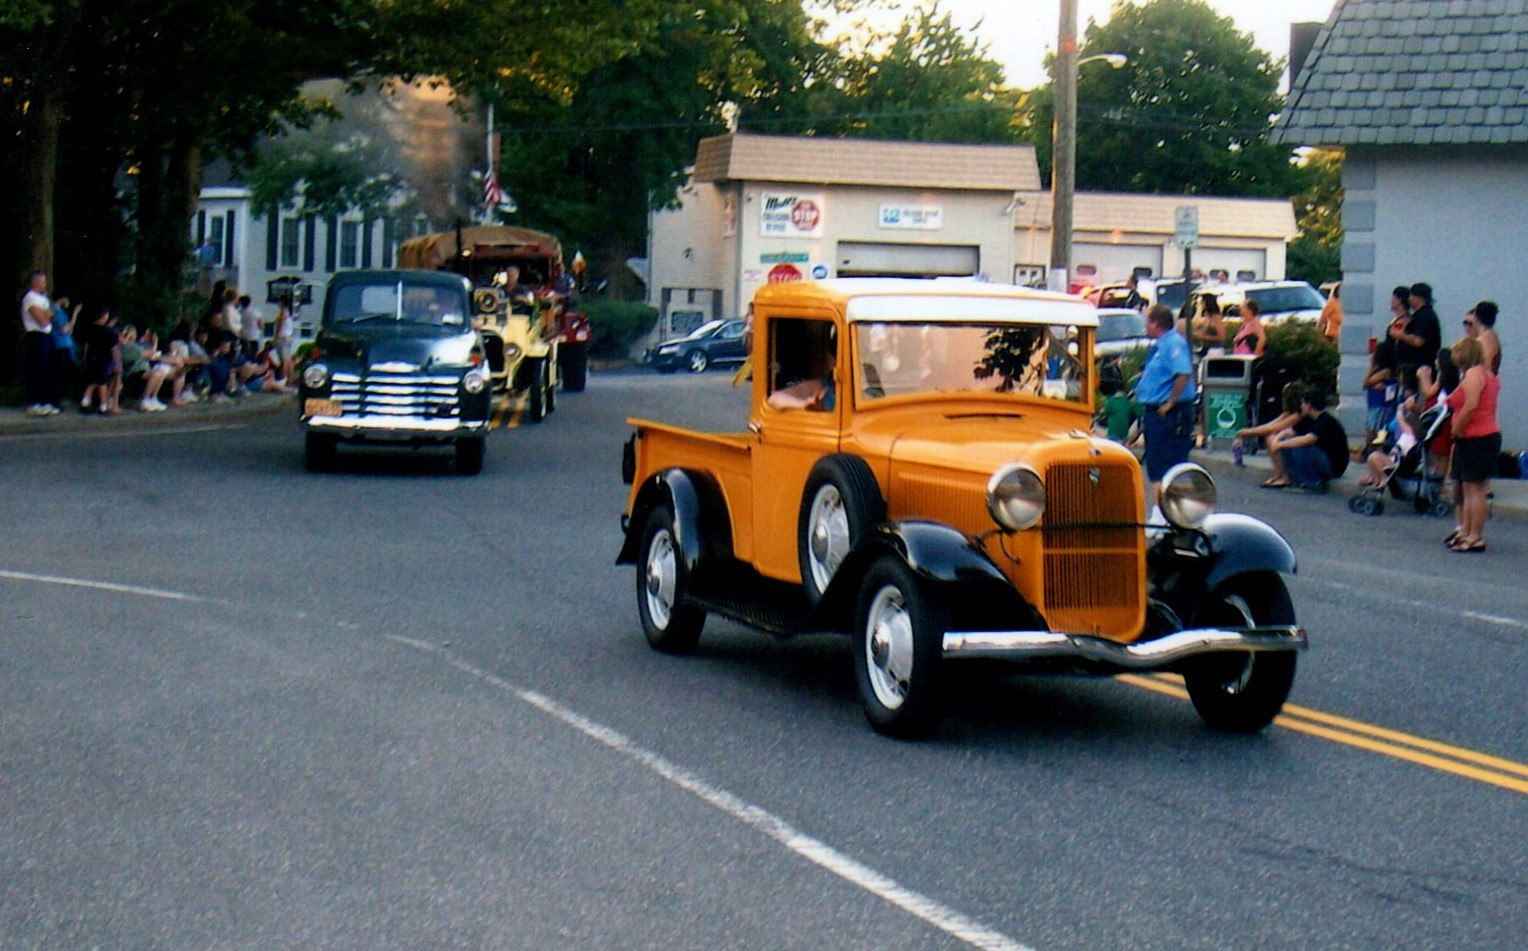 Ron Bruschi's 1933 Ford followed by Jude Petroski's 1948 Chevrolet  & Philip Huntingtons 1923 Brockway